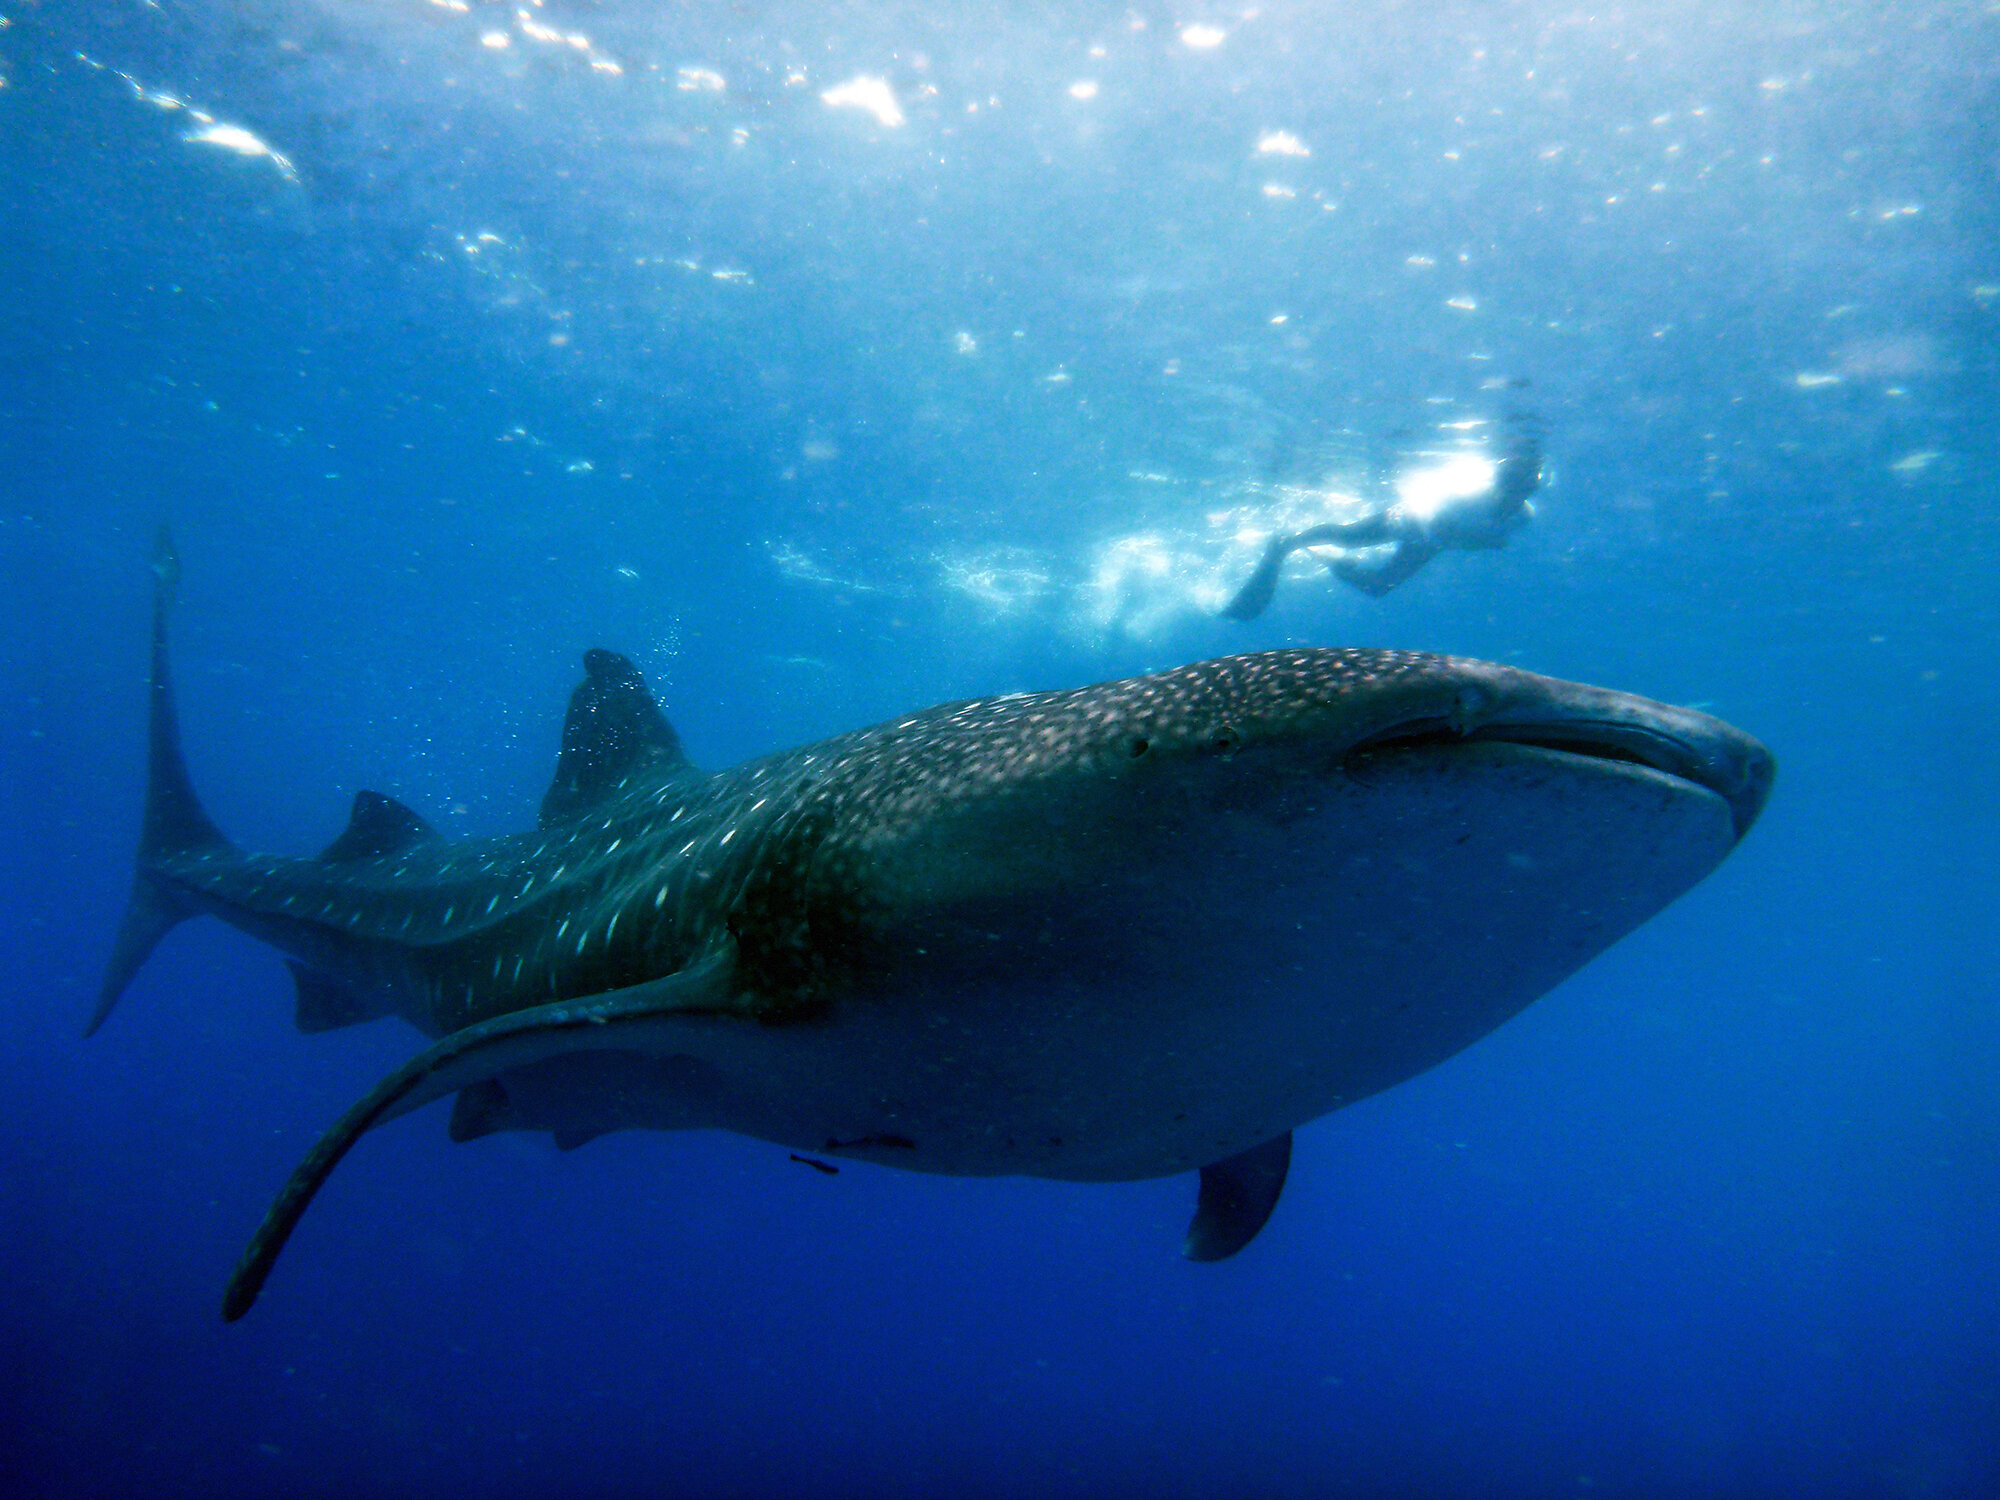 A volunteer swimming with a whale shark during a shark behavior study.